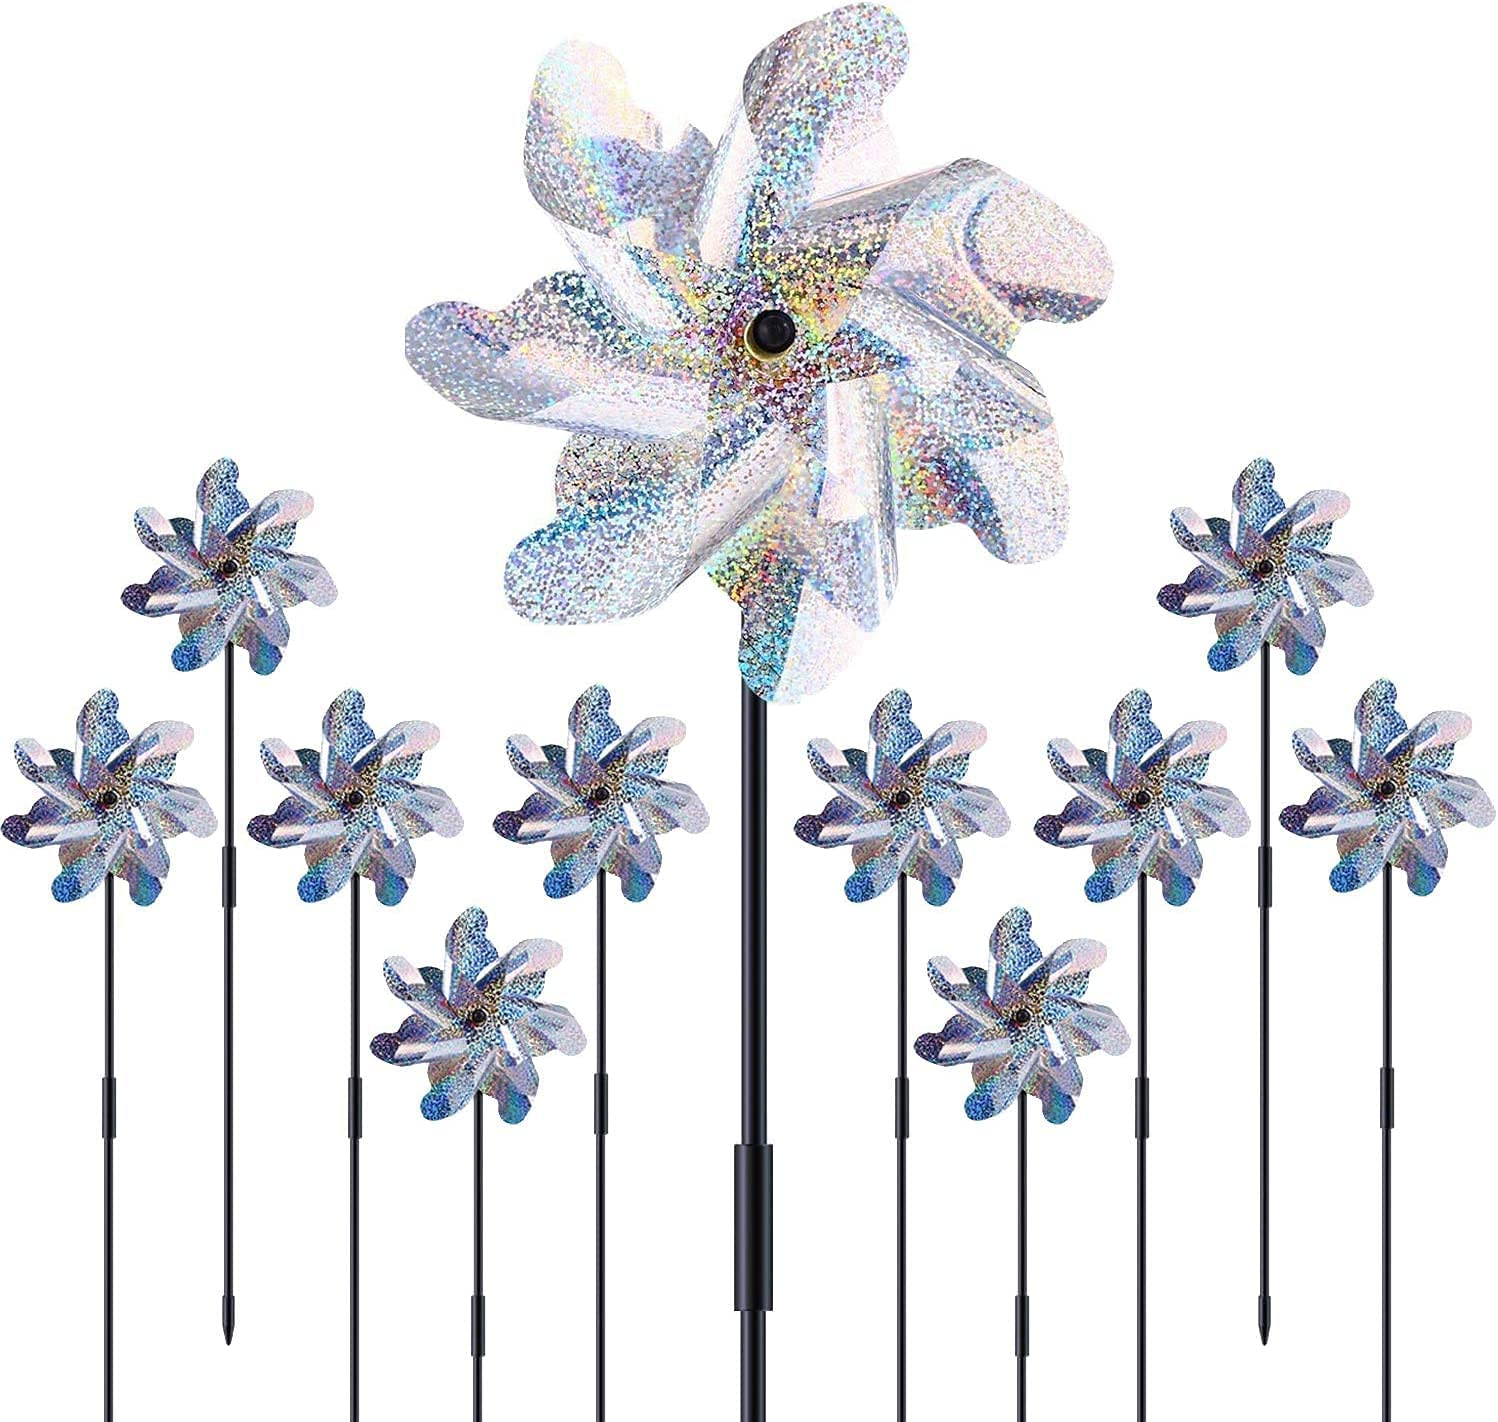 ELECTRFIRE Pinwheels Reflective with Stakes 10 Pack for Garden and Yard, Extra Sparkly Pin Wheel for Garden Decoration, Outdoor Wind Catcher